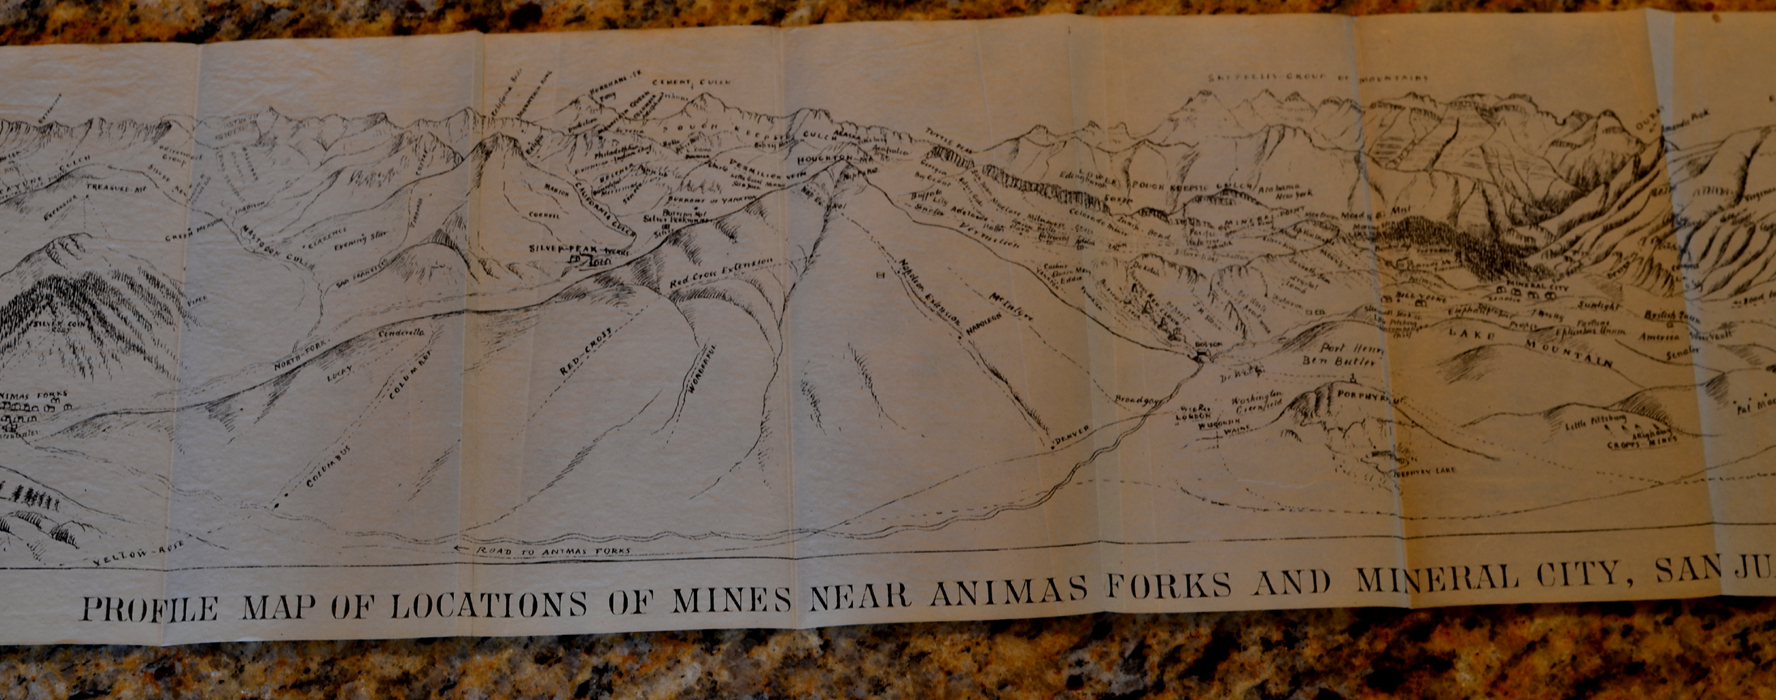 Original 12 Page Booklet In Near Fine Condition Map Itself Is In Near Fine Condition With No Markings Map Cover Dimensions 8 Inches By 5 1 4 Inches